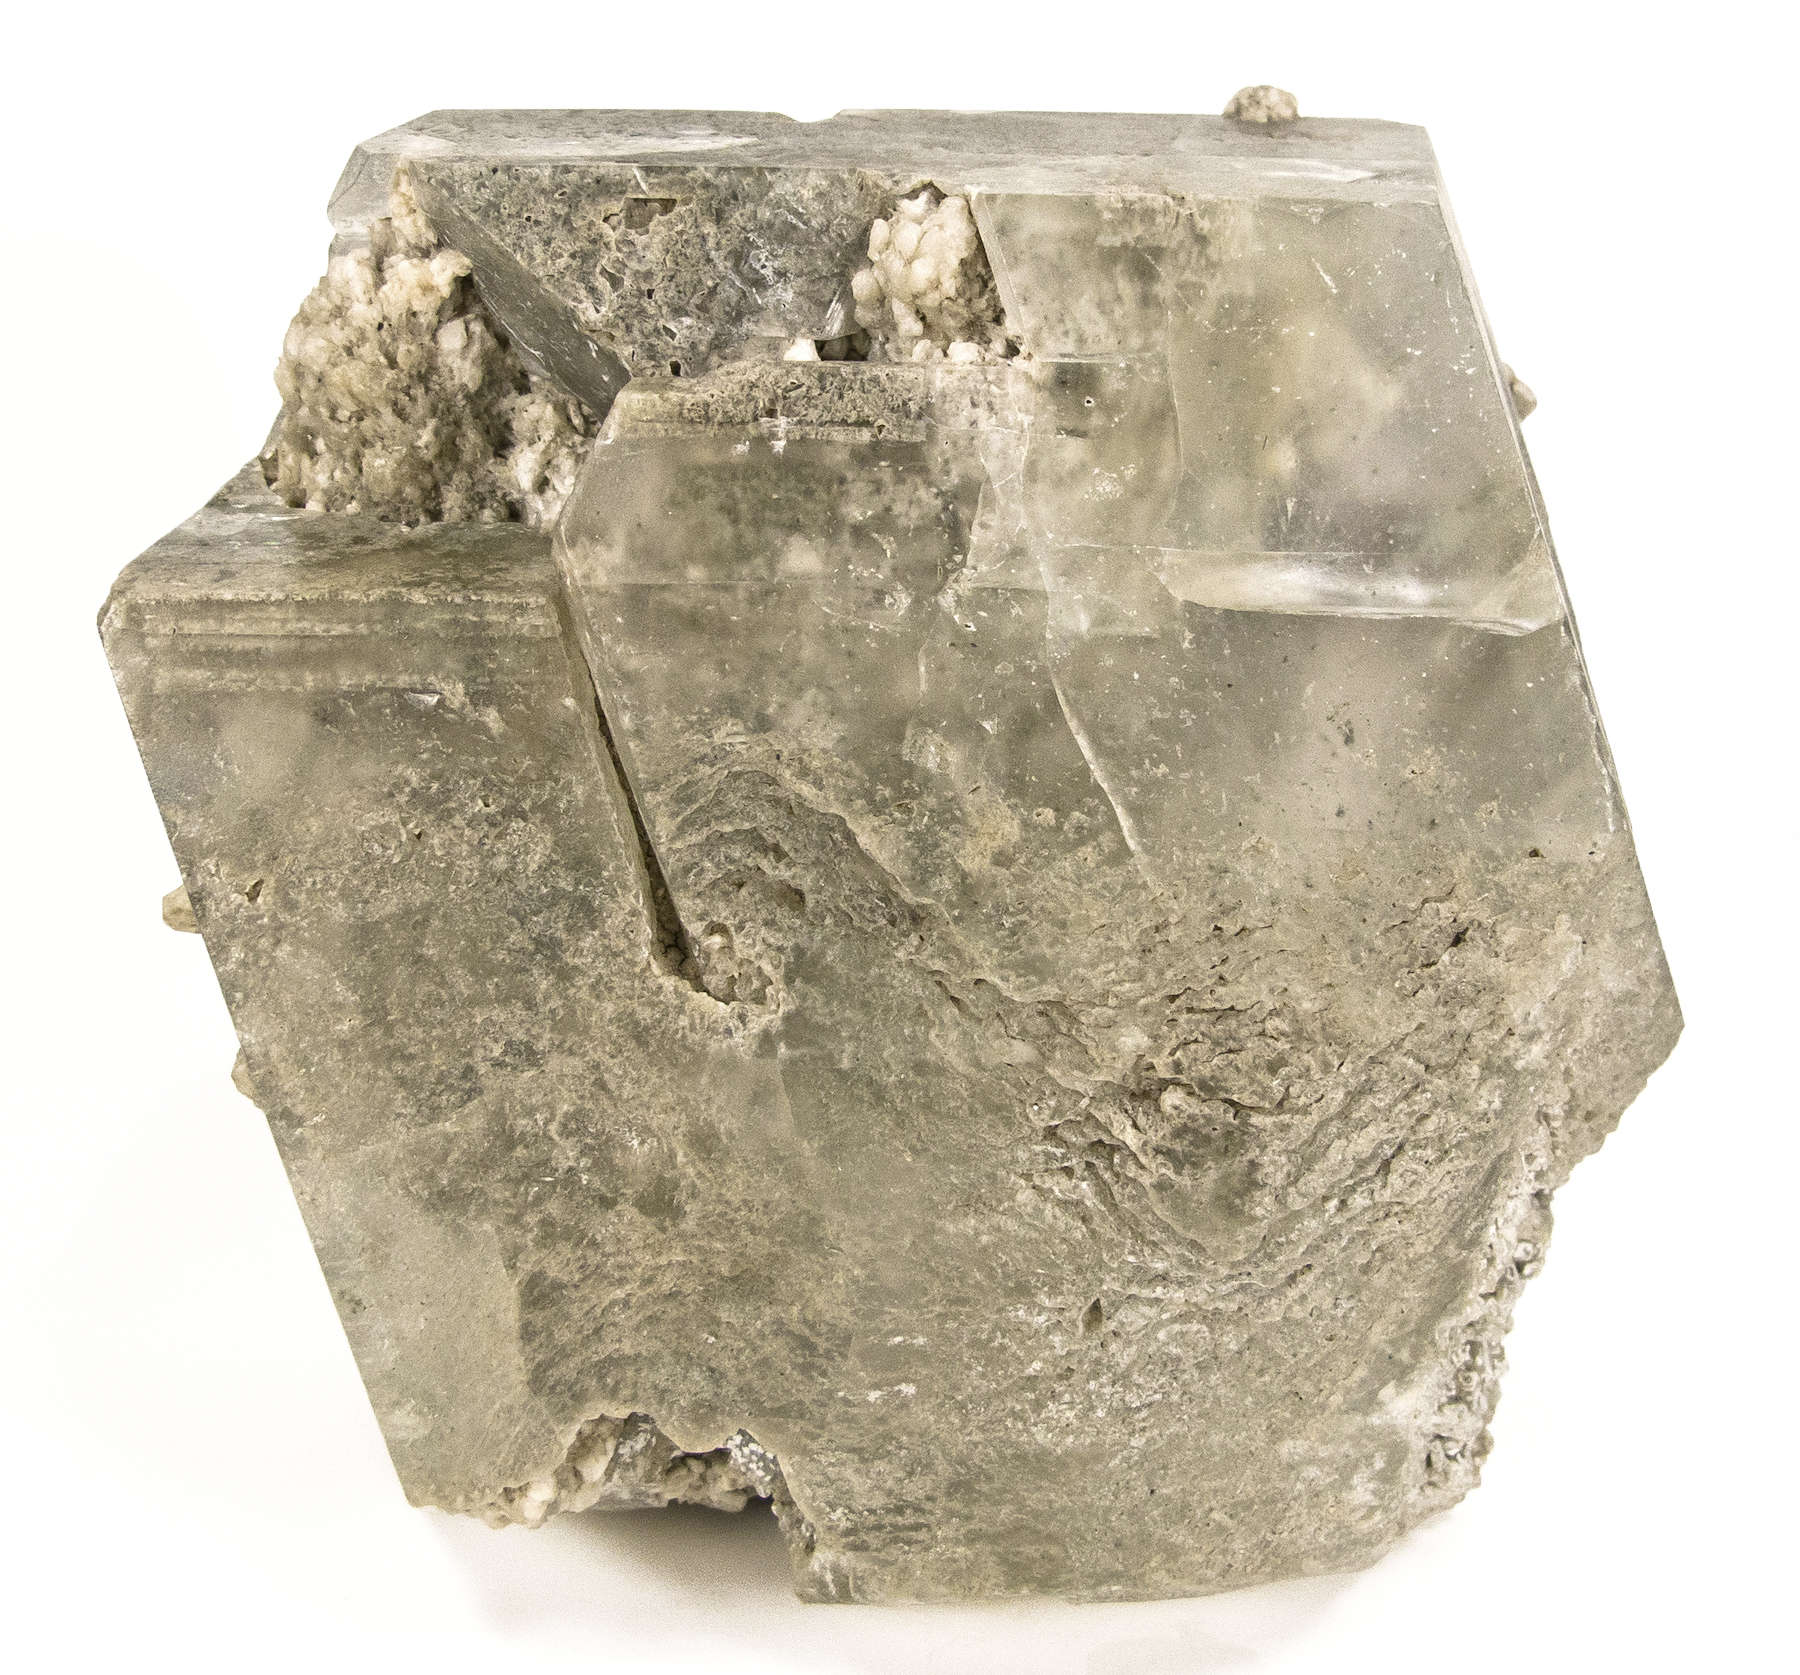 This large euhedral crystal kurnakovite magnesium rich borate The